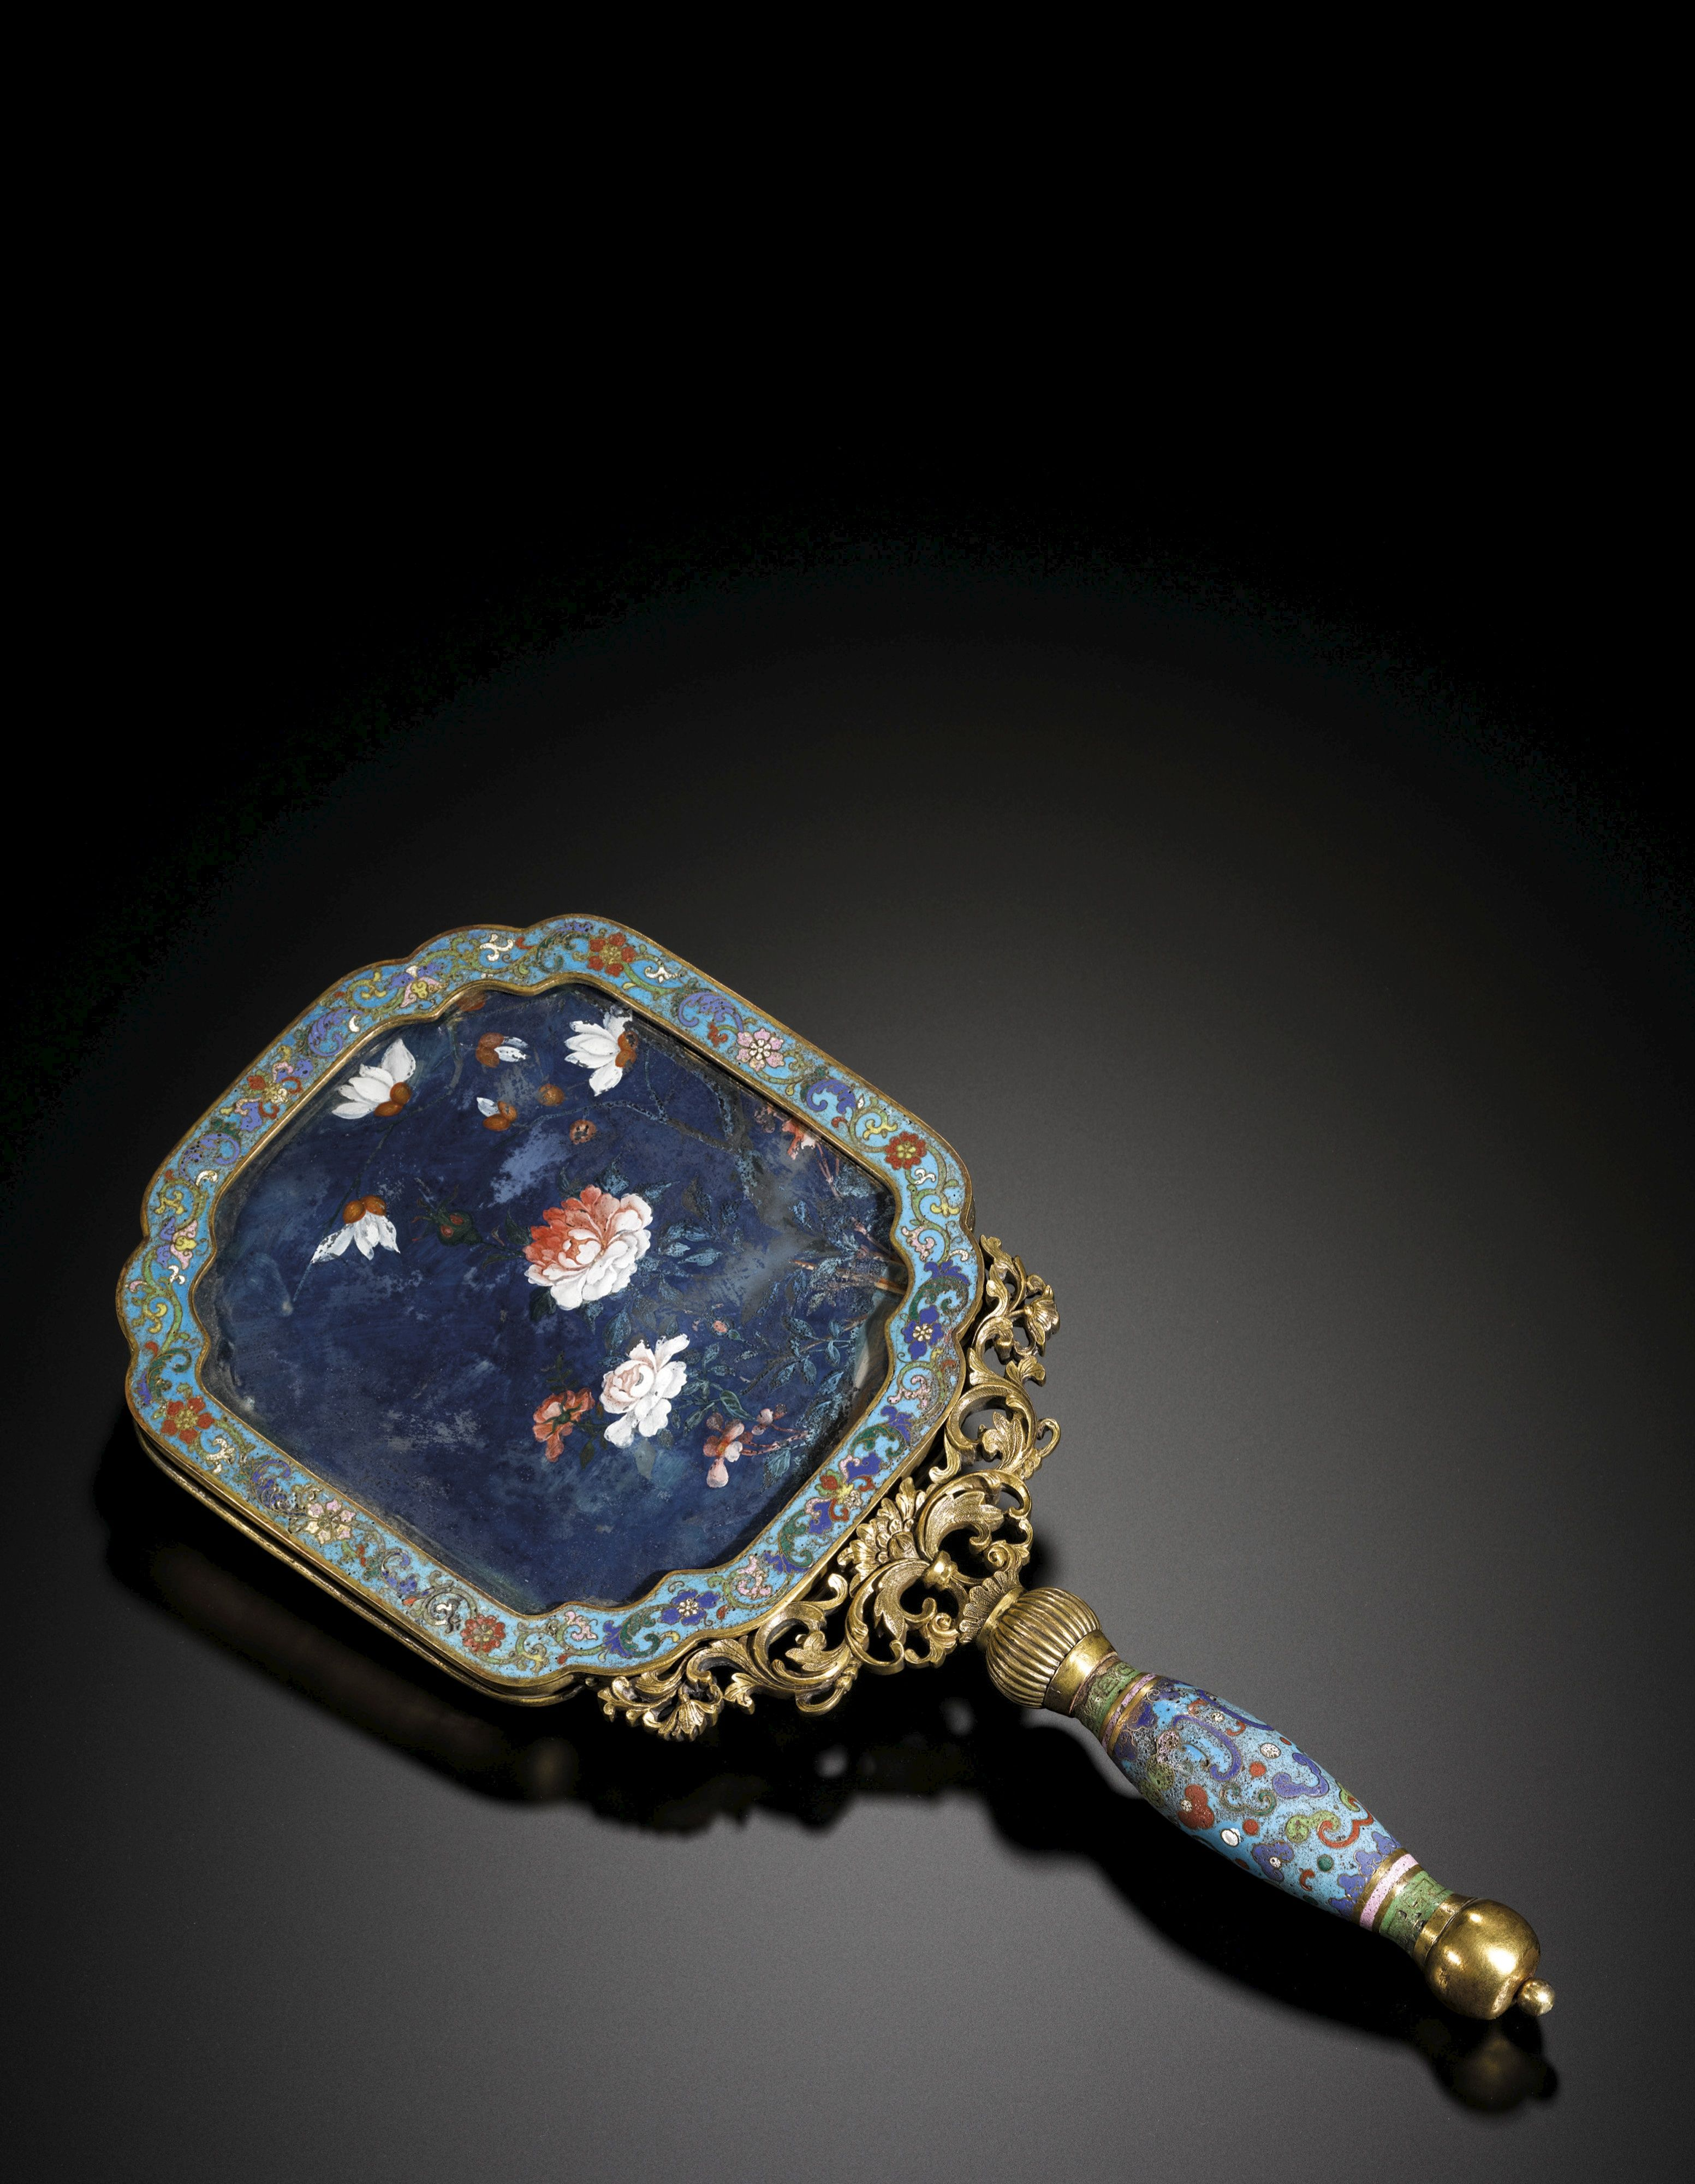 A CLOISONNÉ MIRROR WITH A REVERSE-GLASS PAINTING<br>QING DYNASTY, 18TH CENTURY | Lot | Sotheby's